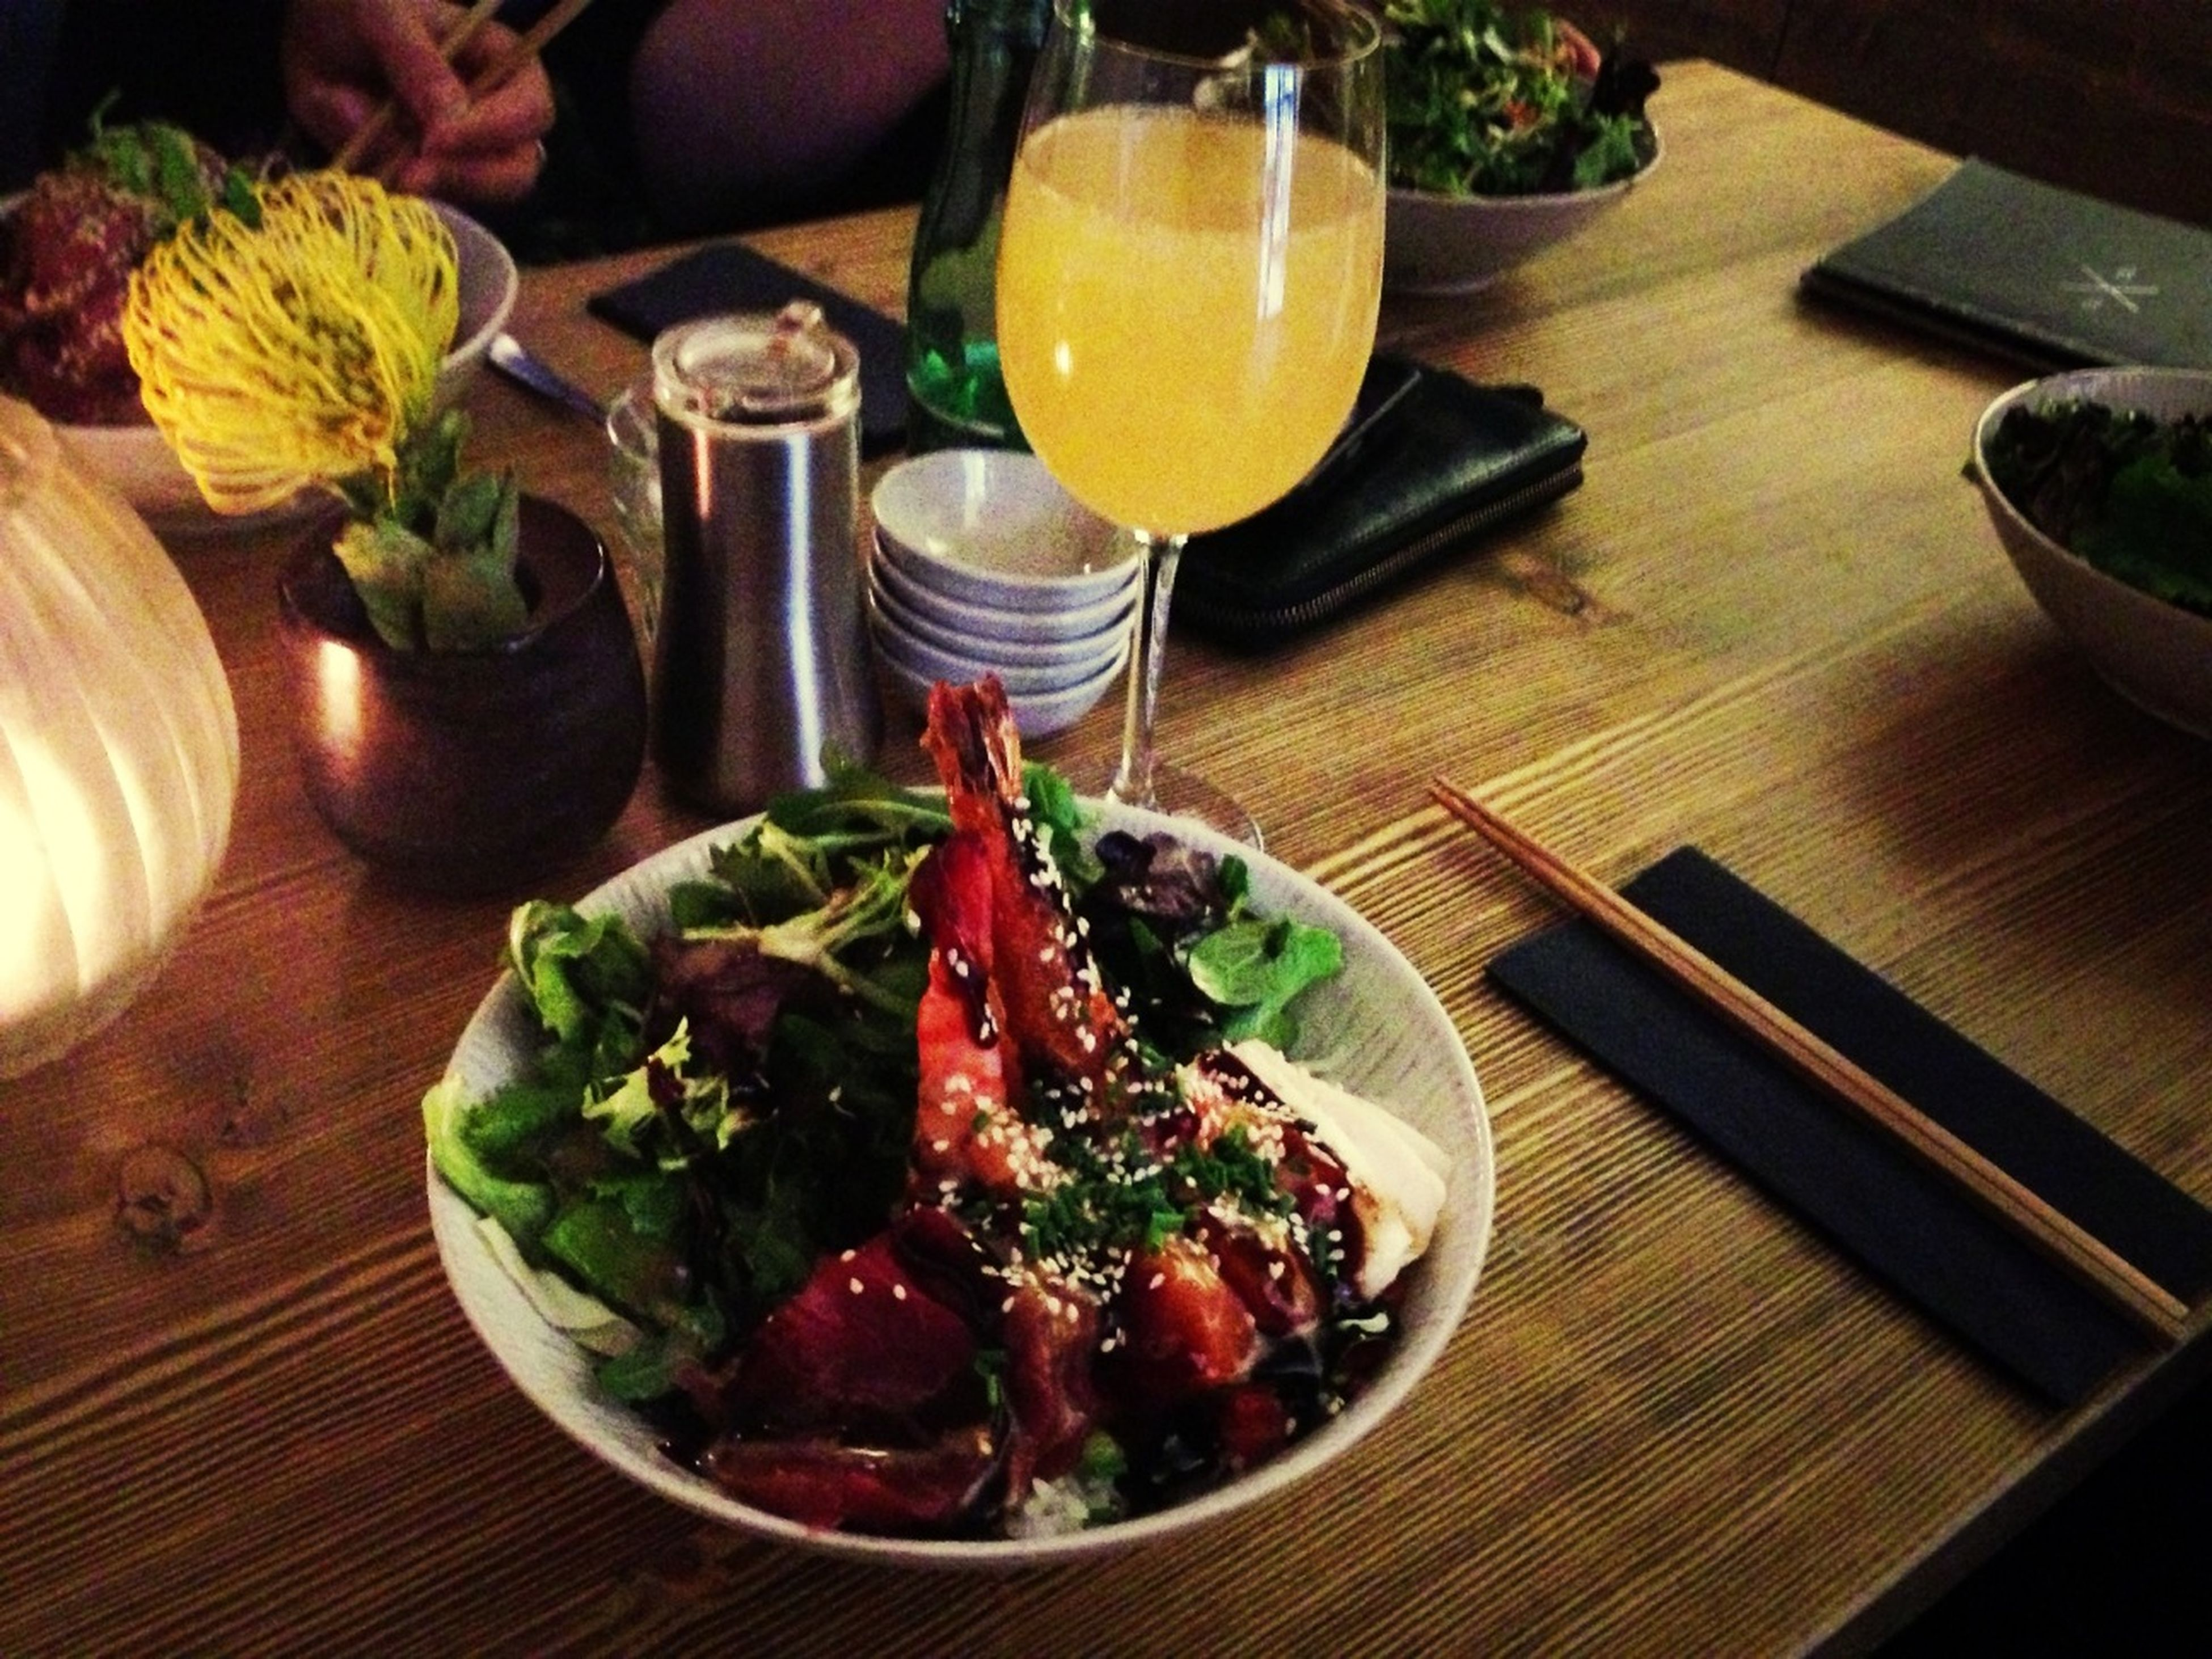 food and drink, table, indoors, food, freshness, still life, healthy eating, plate, ready-to-eat, high angle view, wood - material, vegetable, drinking glass, drink, serving size, meal, salad, served, restaurant, bowl